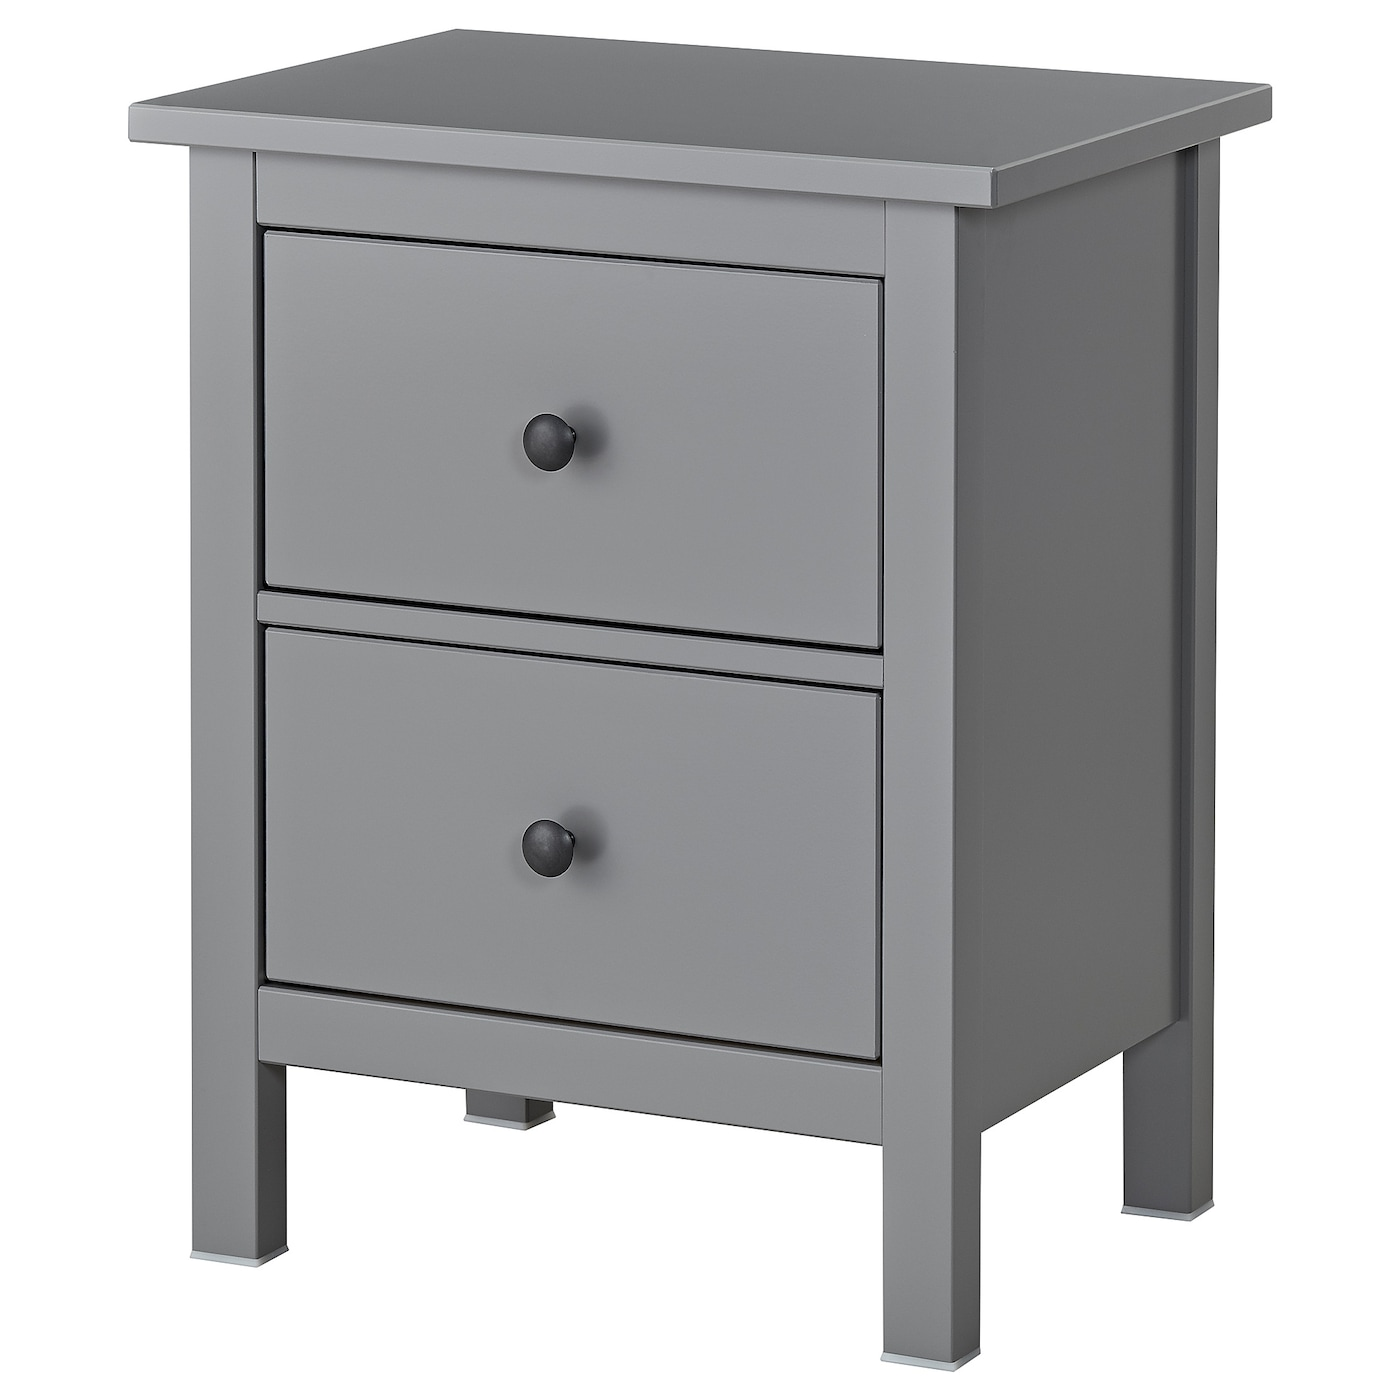 Wonderful IKEA HEMNES Chest Of 2 Drawers Smooth Running Drawers With Pull Out Stop.